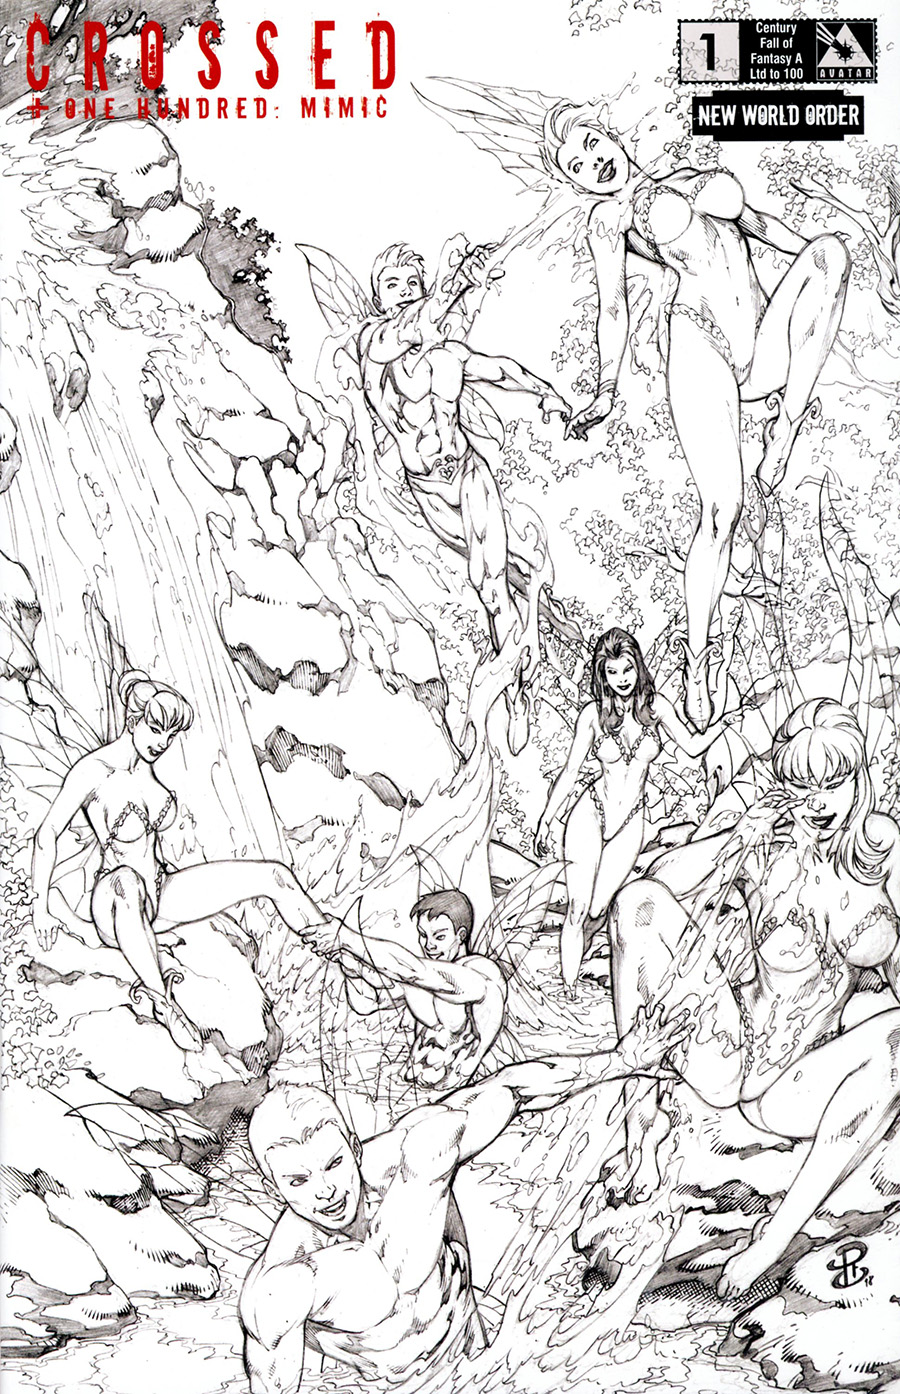 Crossed Plus 100 Mimic #1 Cover M NWO Century Fall Of Fantasy A Cover